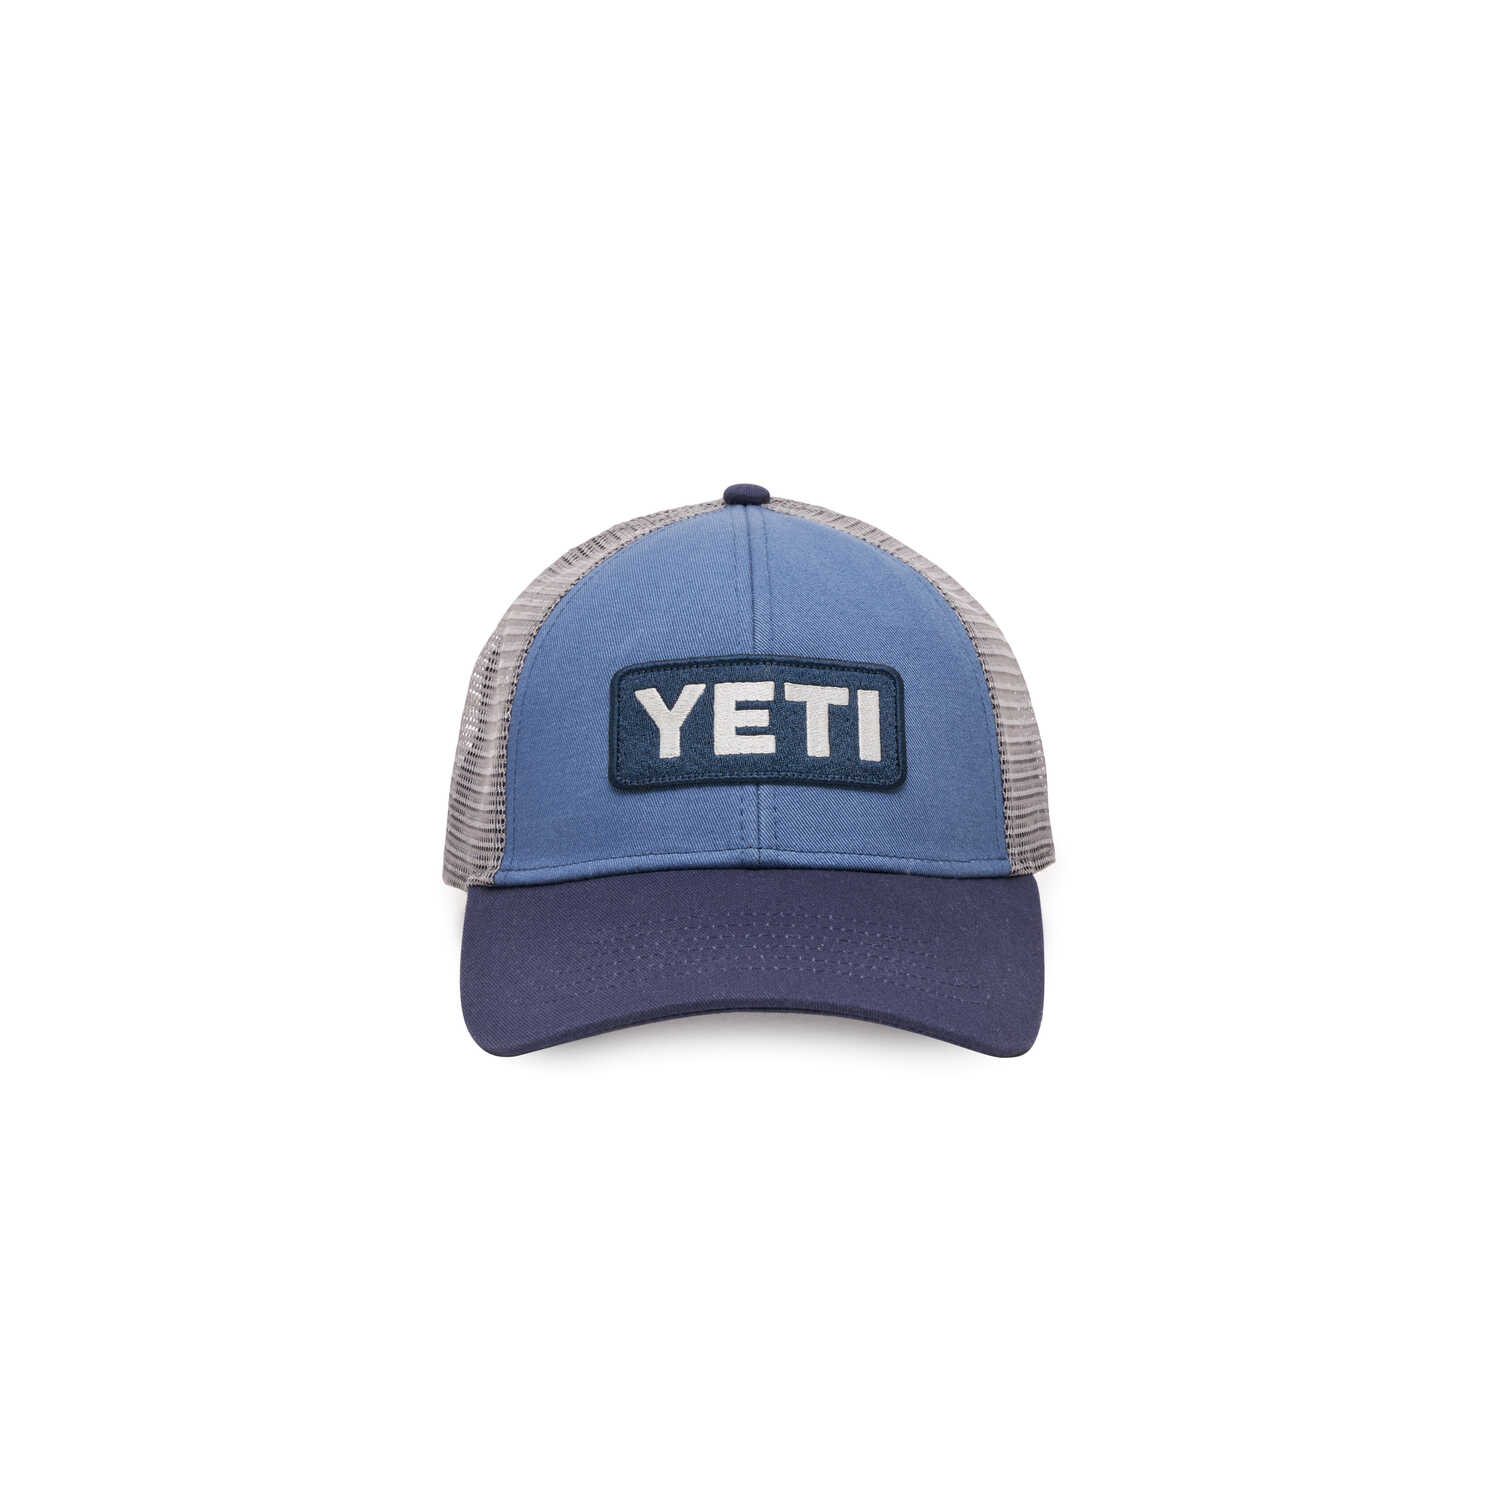 YETI  Tonal  Trucker Hat  Blue  One Size Fits Most